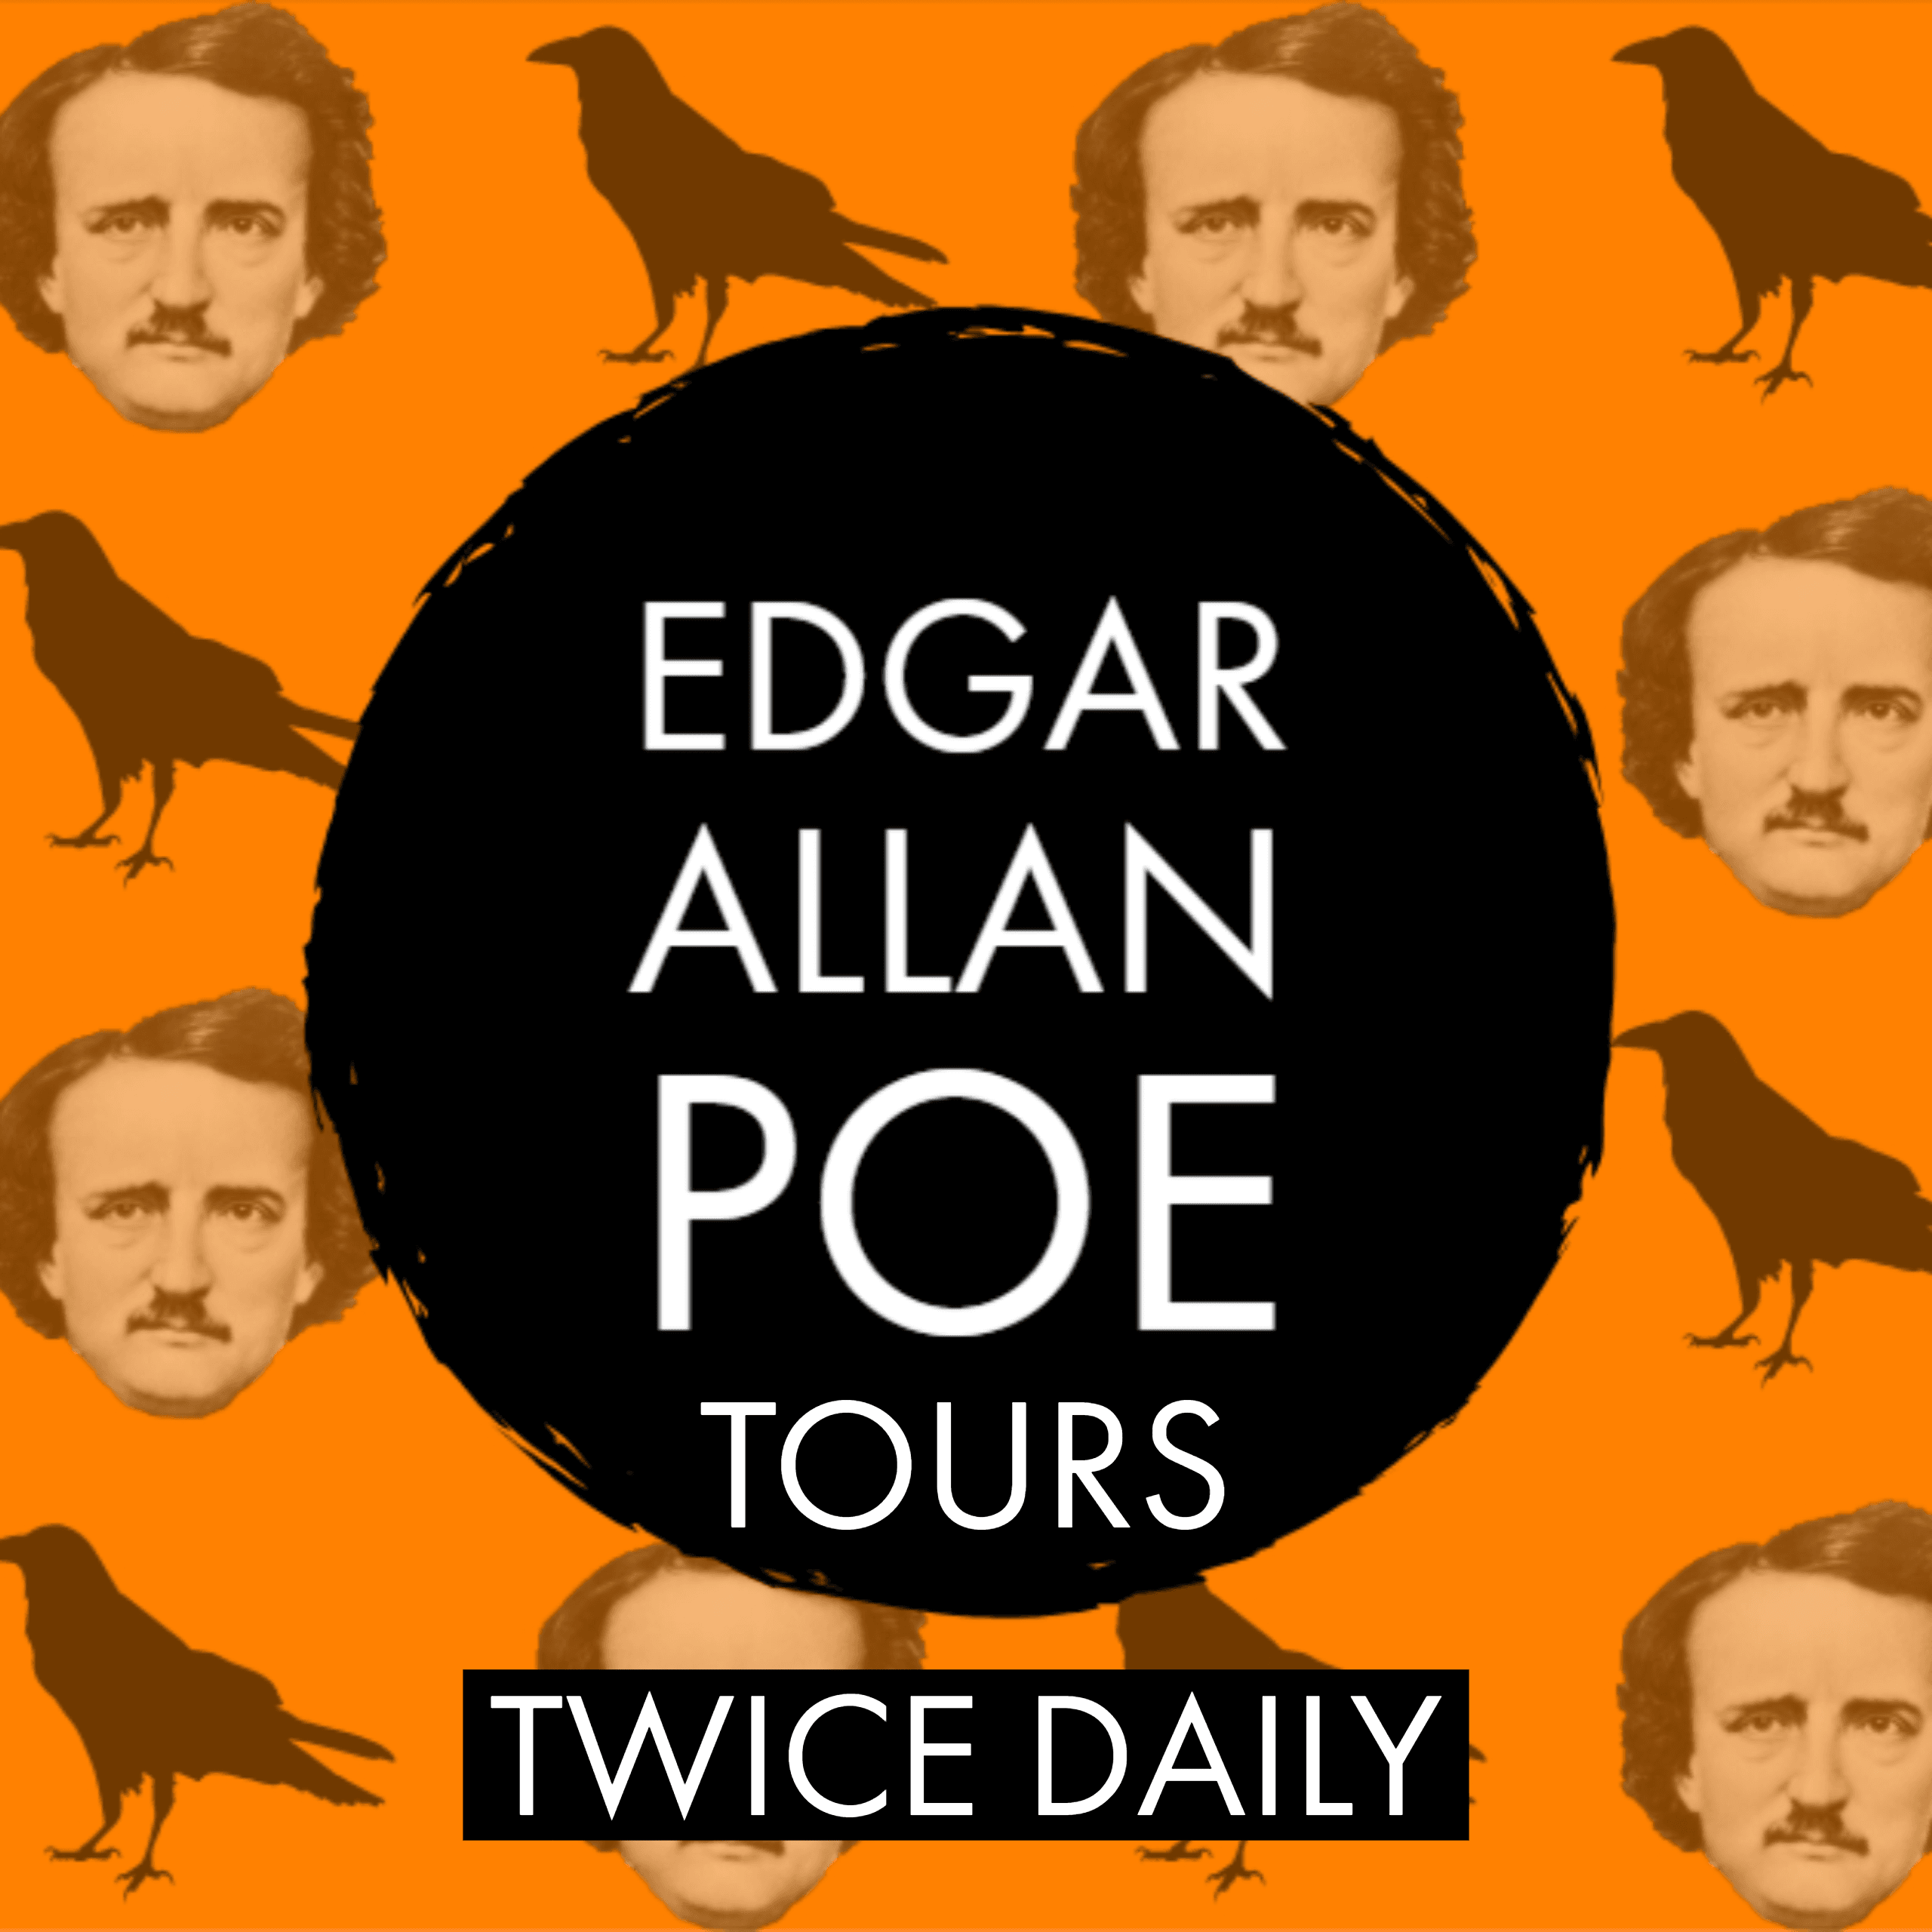 Edgar Allan Poe-themed tours at the American Writers Museum in October